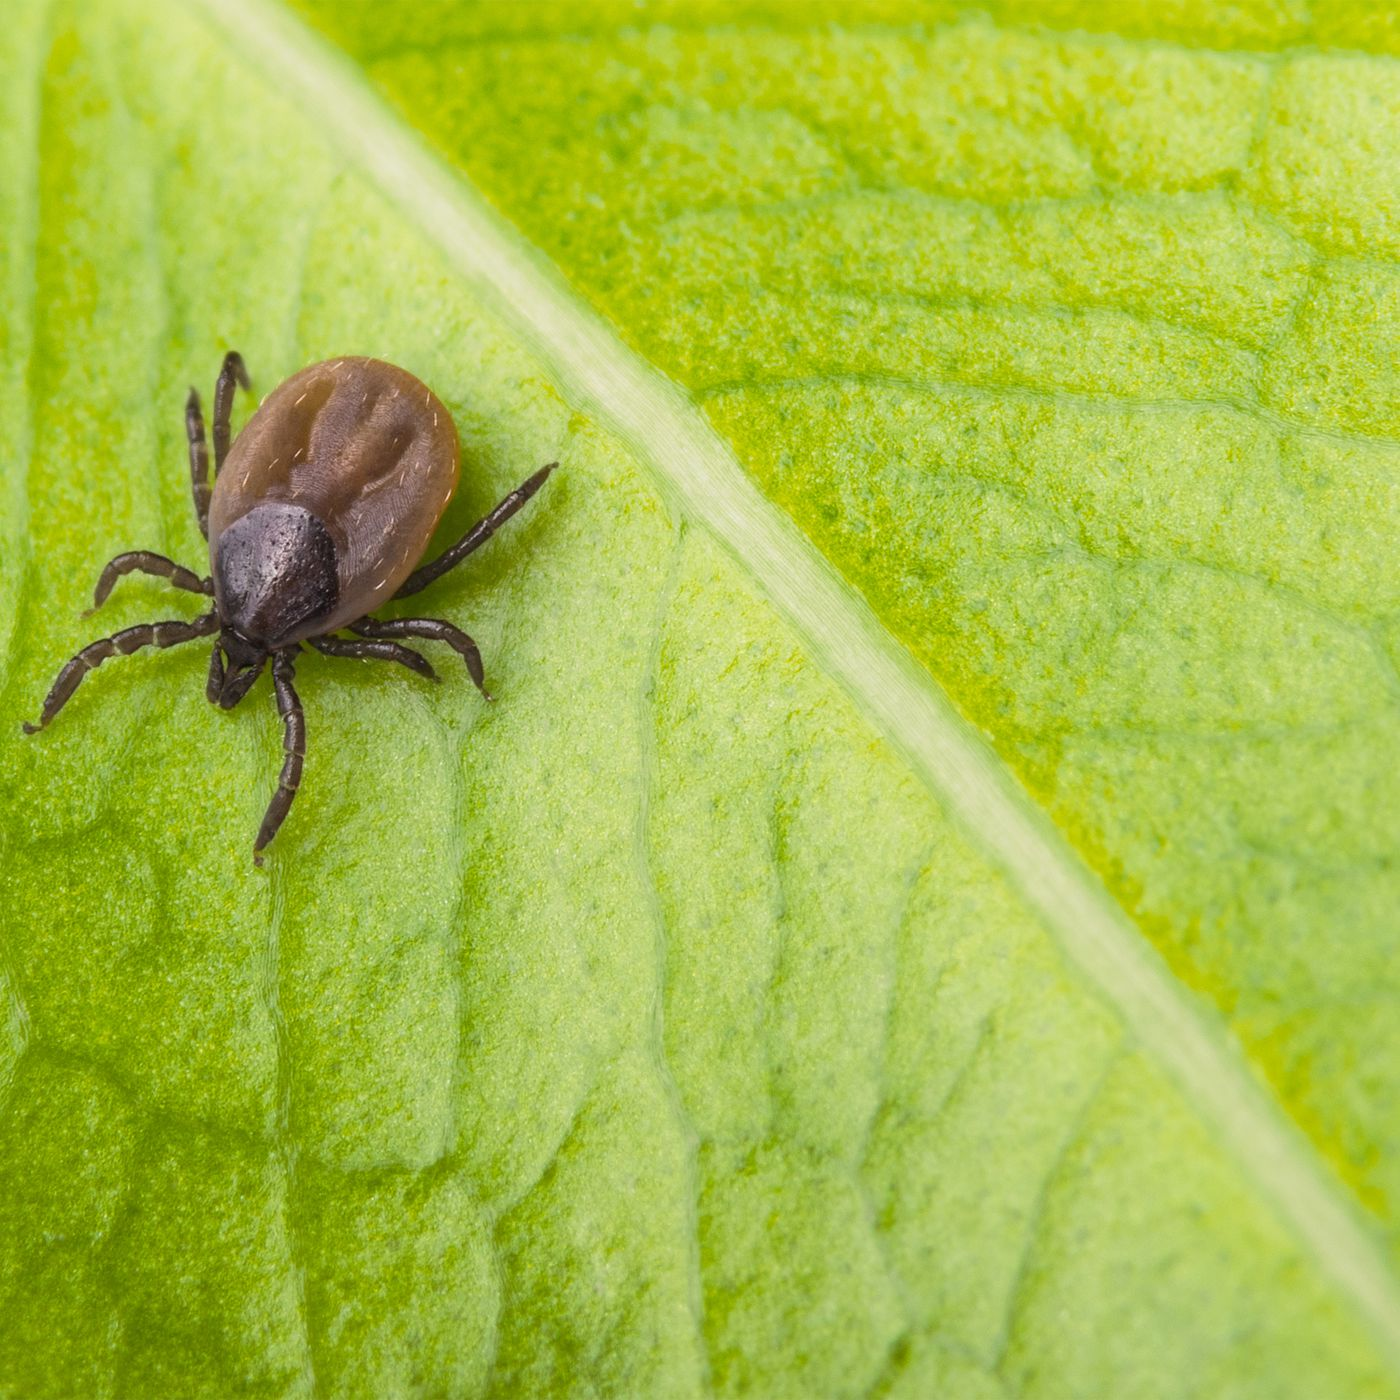 Ticks Vs Bed Bugs Differences Similarities This Old House